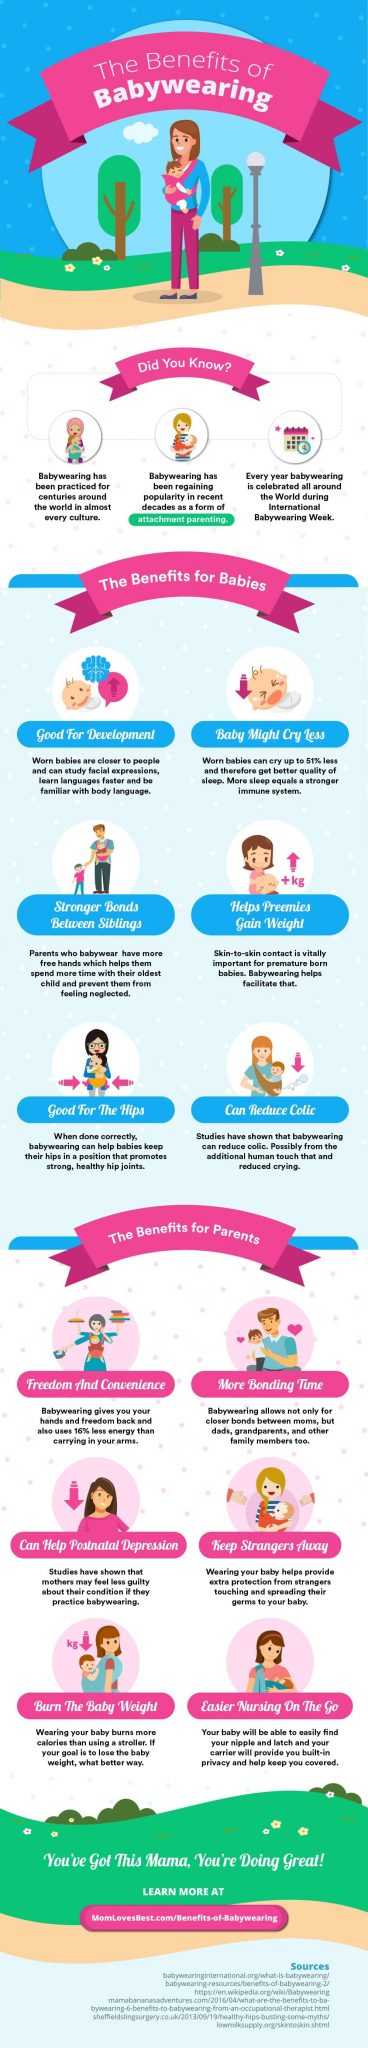 Benefits of Babywearing Infographic The Little Known Benefits of Babywearing by North Carolina Lifestyle Blogger Champagne Style Bare Budget